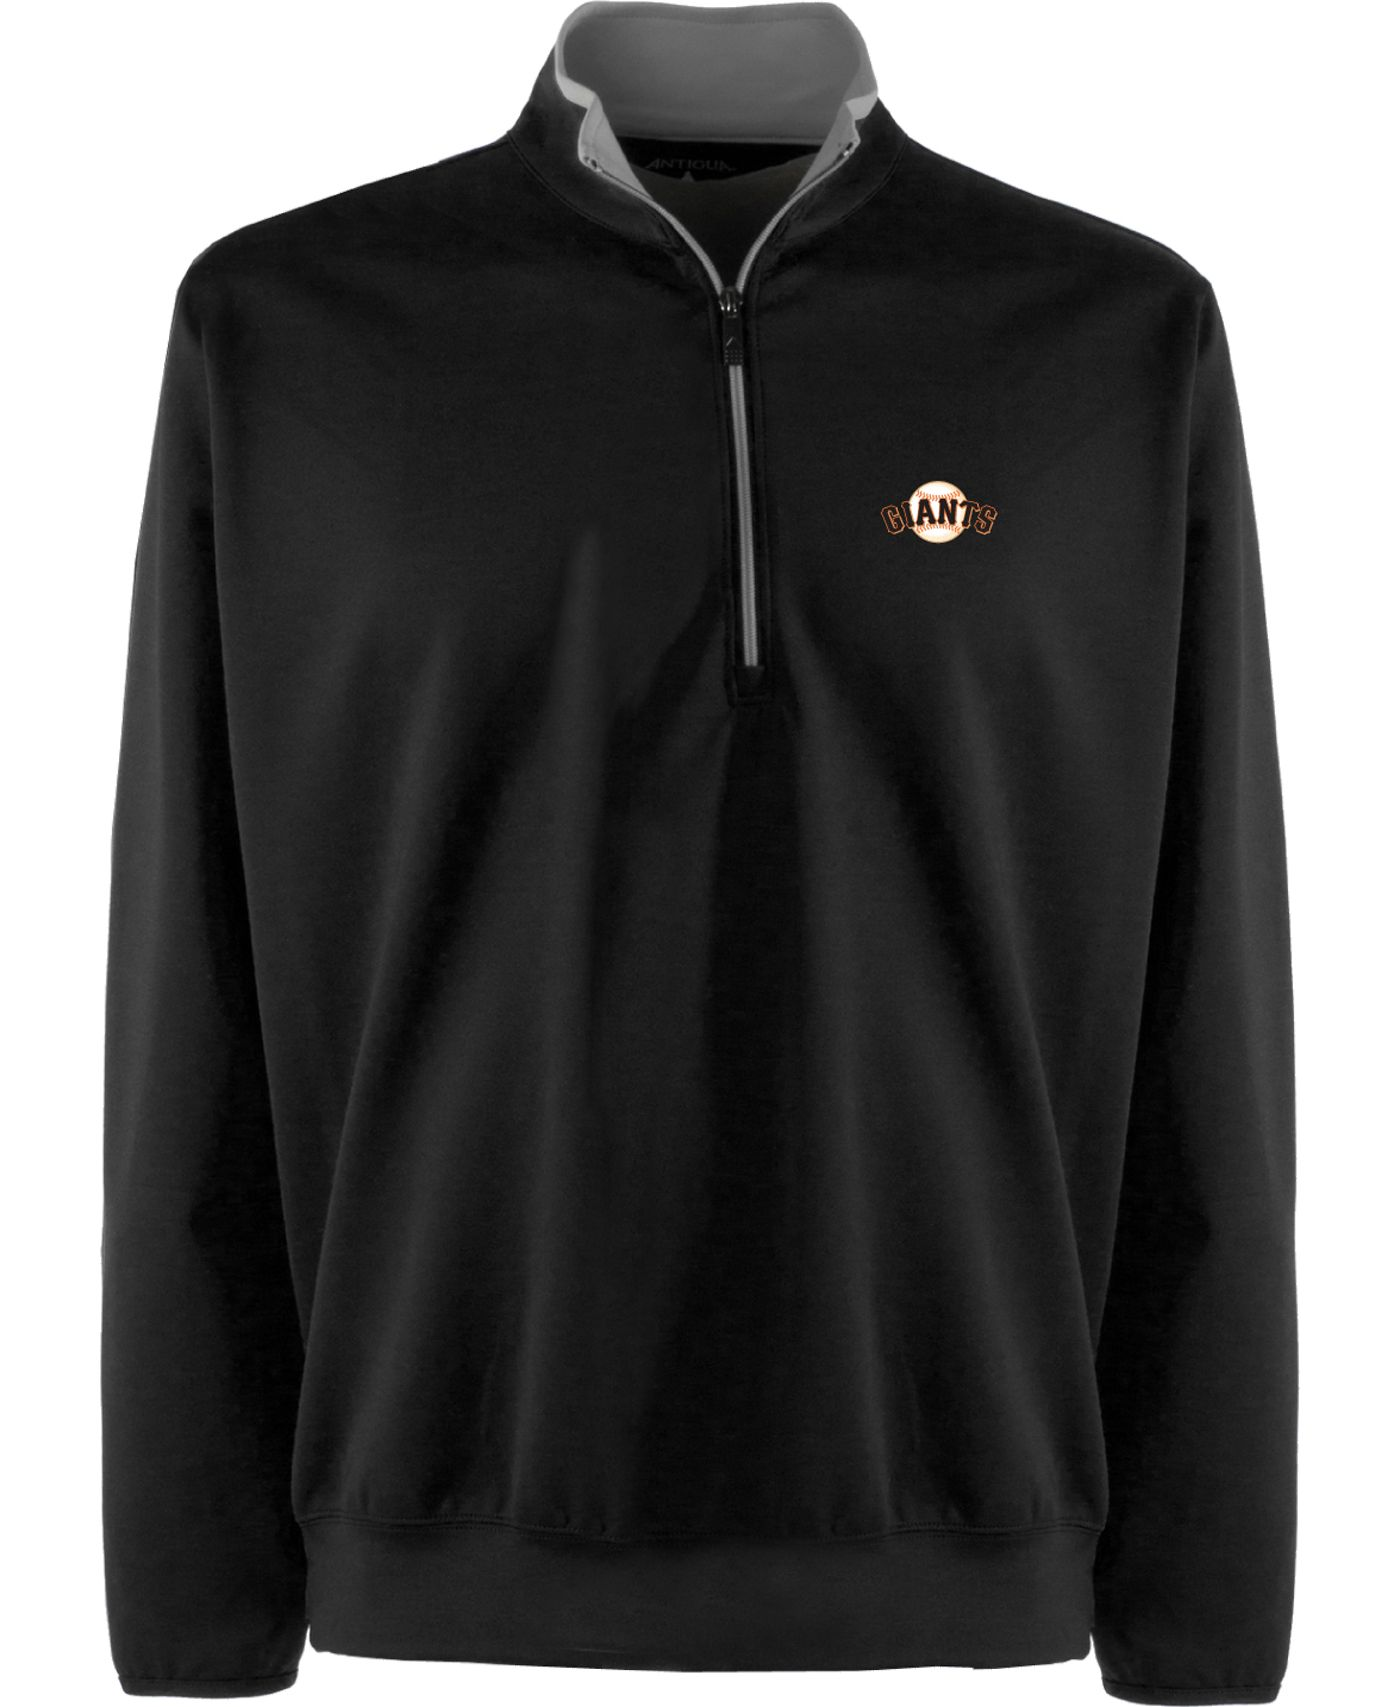 Antigua Men's San Francisco Giants Leader Black Quarter-Zip Pullover